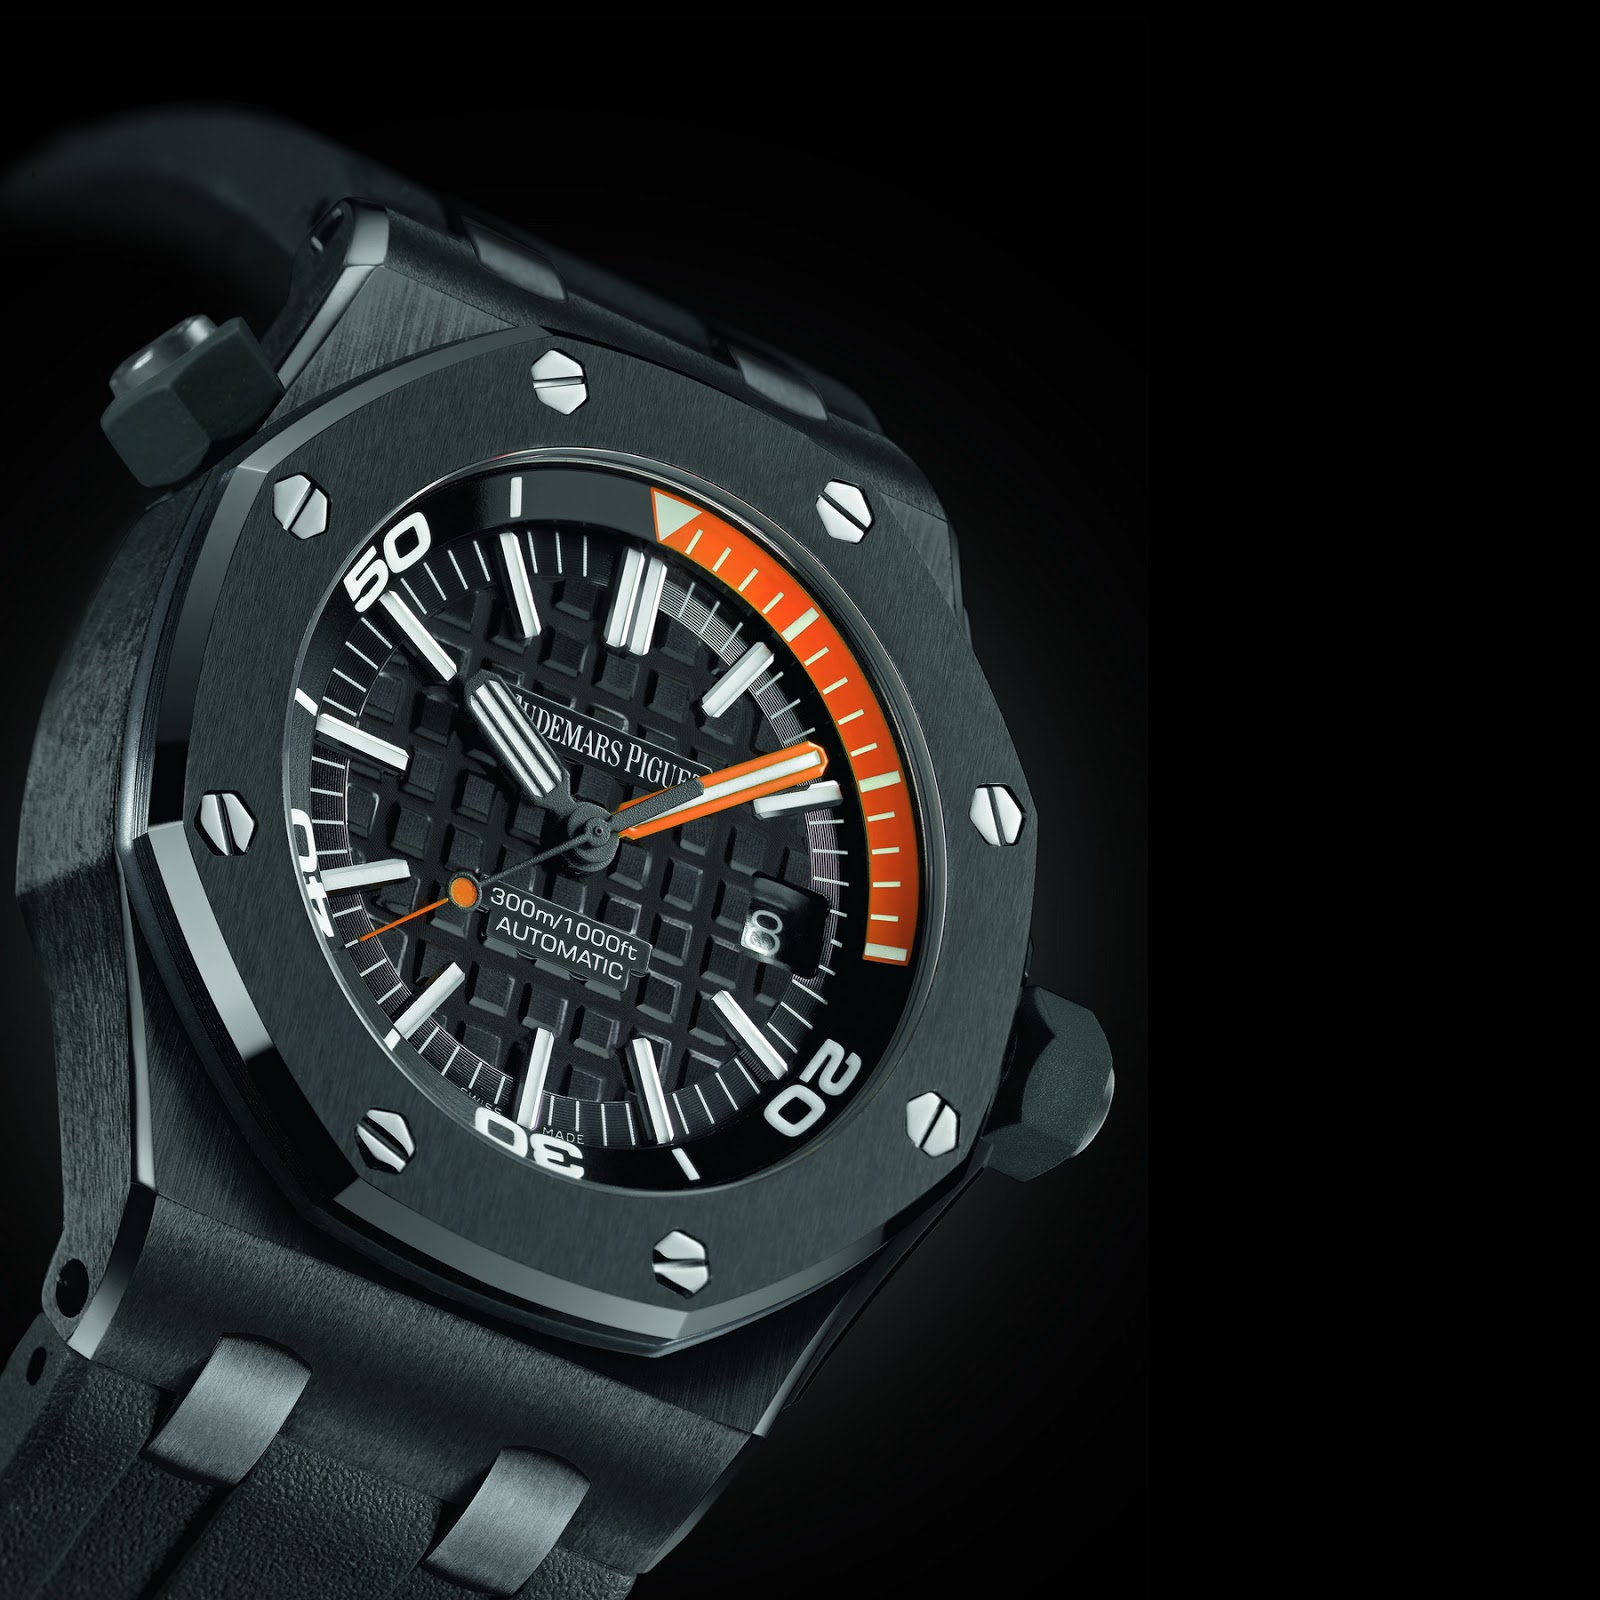 Oceanictime audemars piguet royal oak offshore diver ceramic 2ndlook for Royal oak offshore ceramic